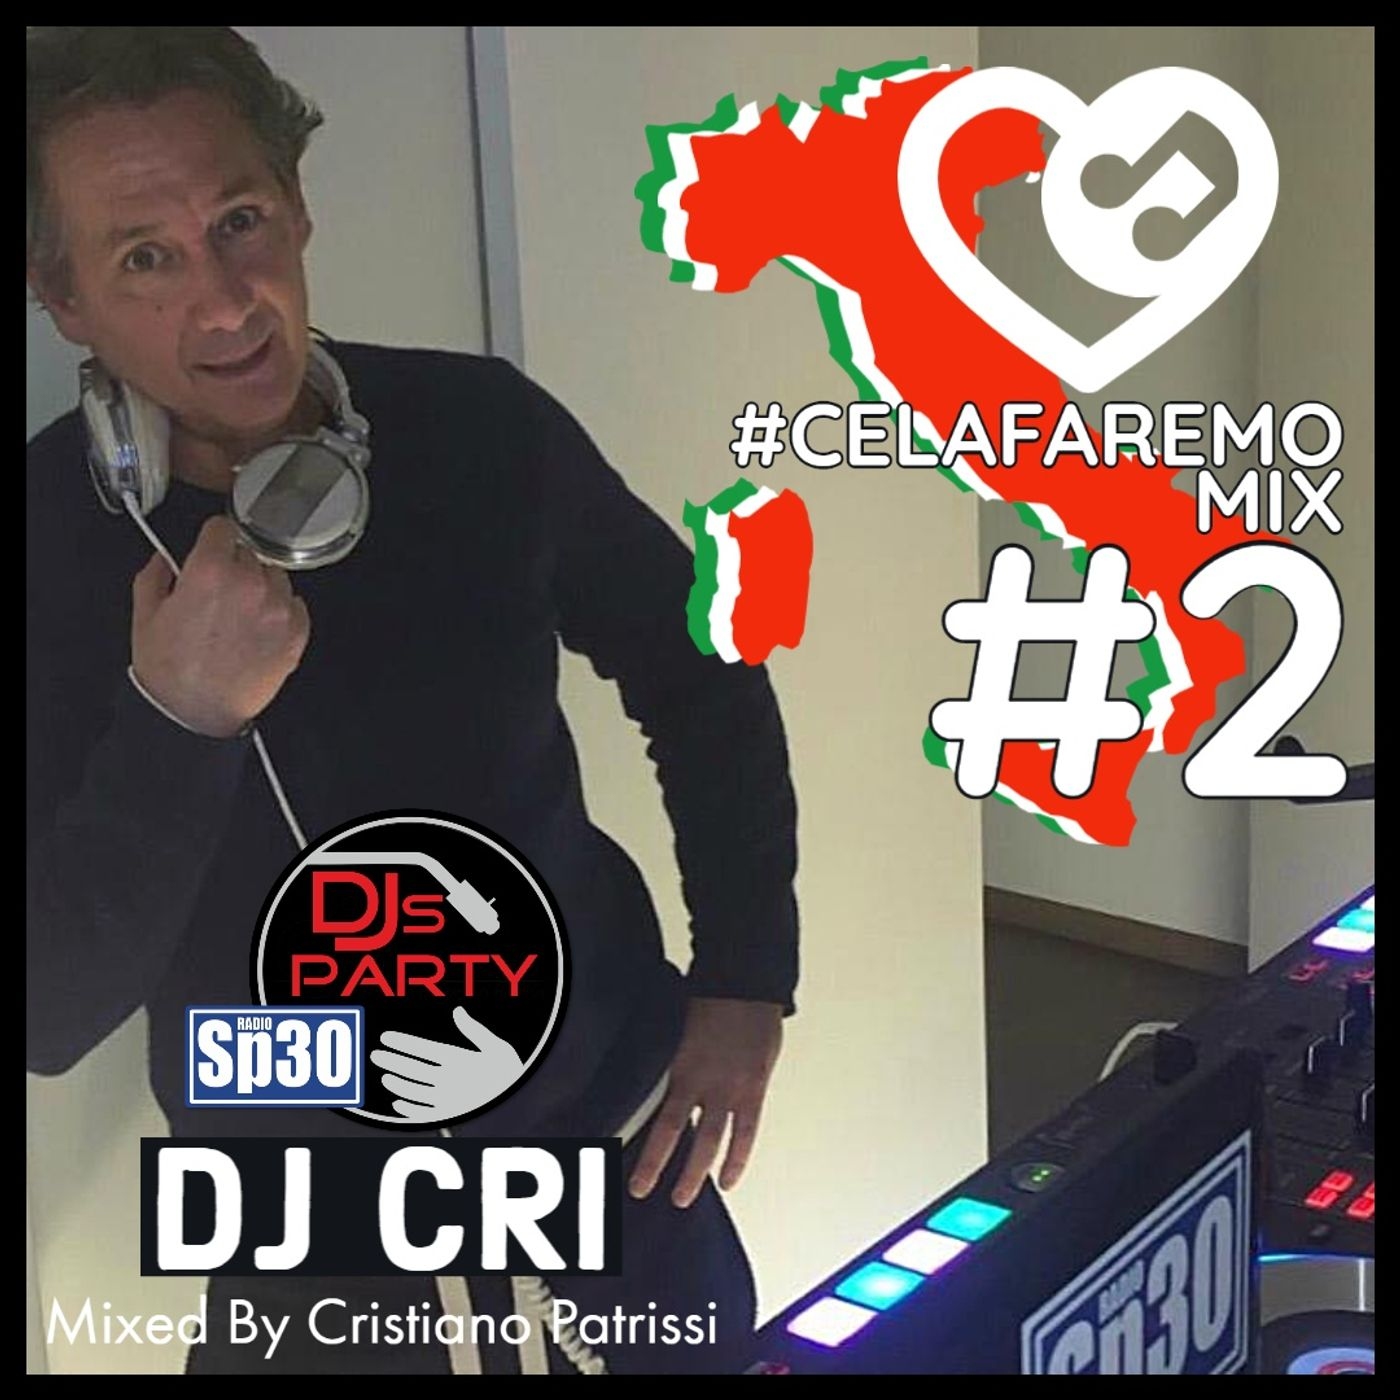 #djsparty #celafaremo #2 - ST.2 EP.28